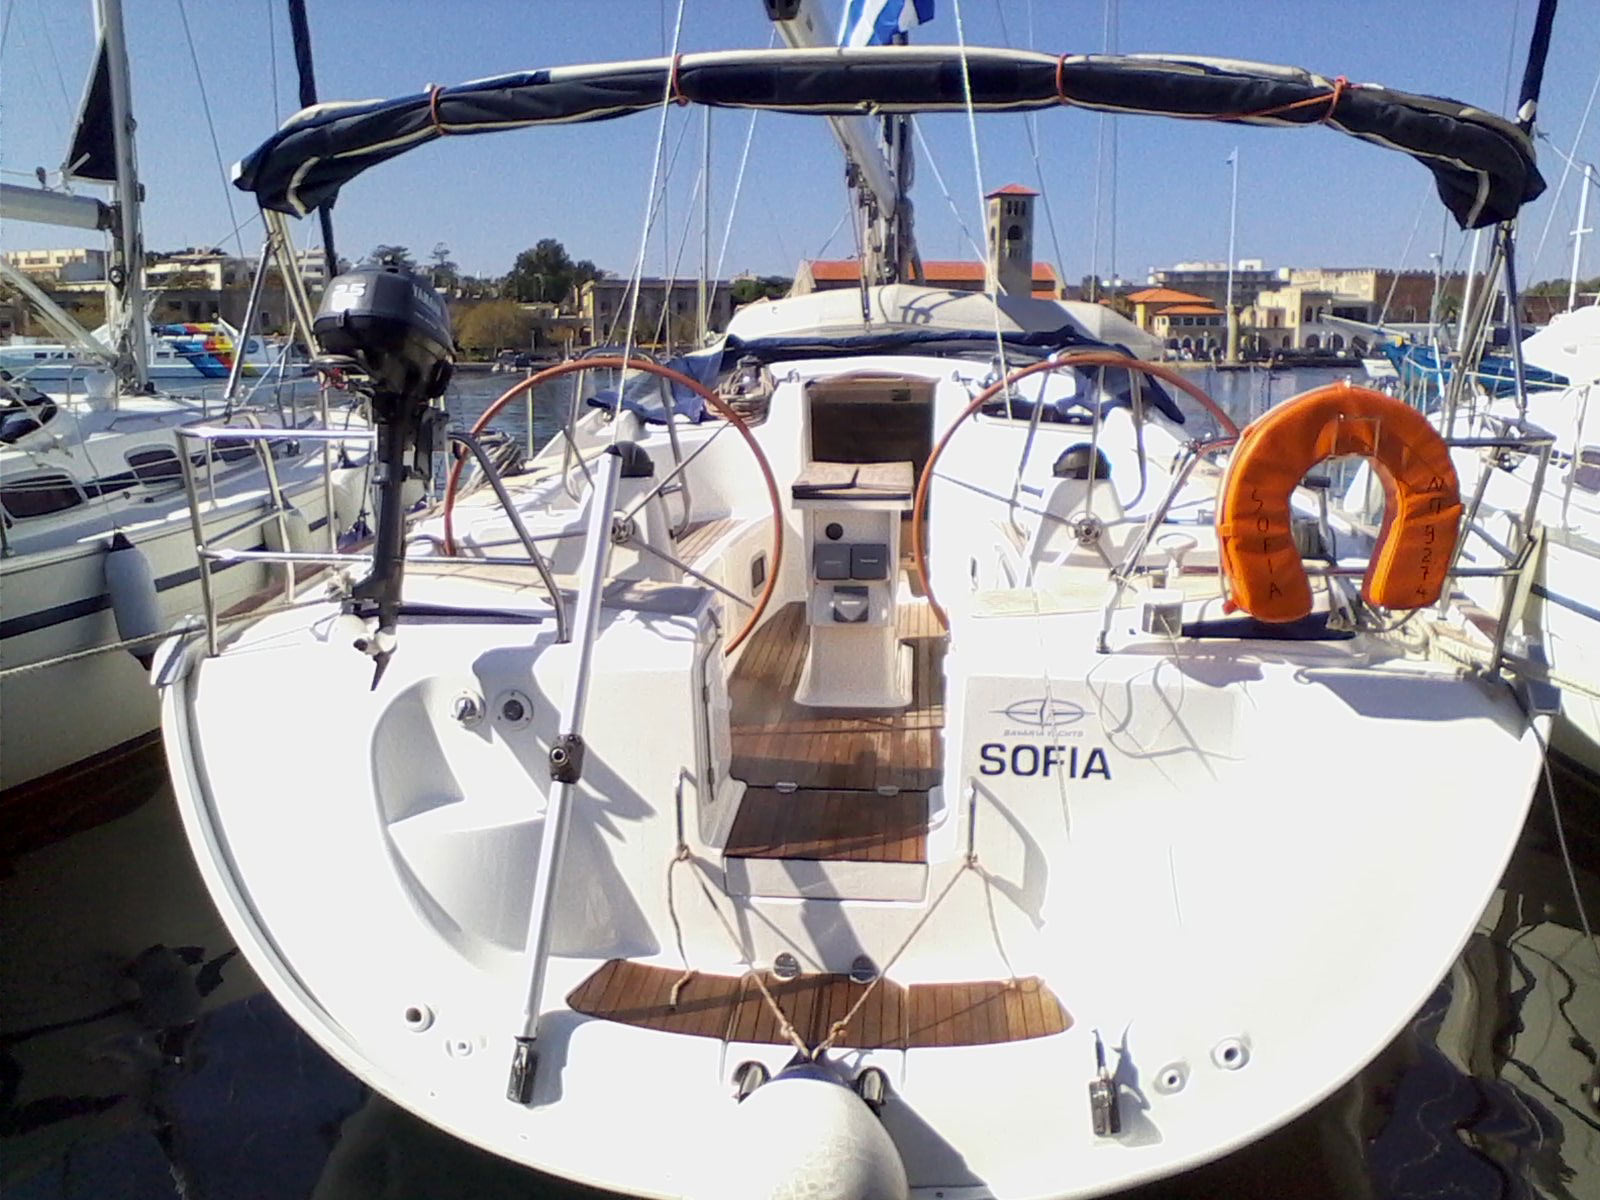 Vorschaubild Bavaria 46 Cruiser - Sofia - Rear view